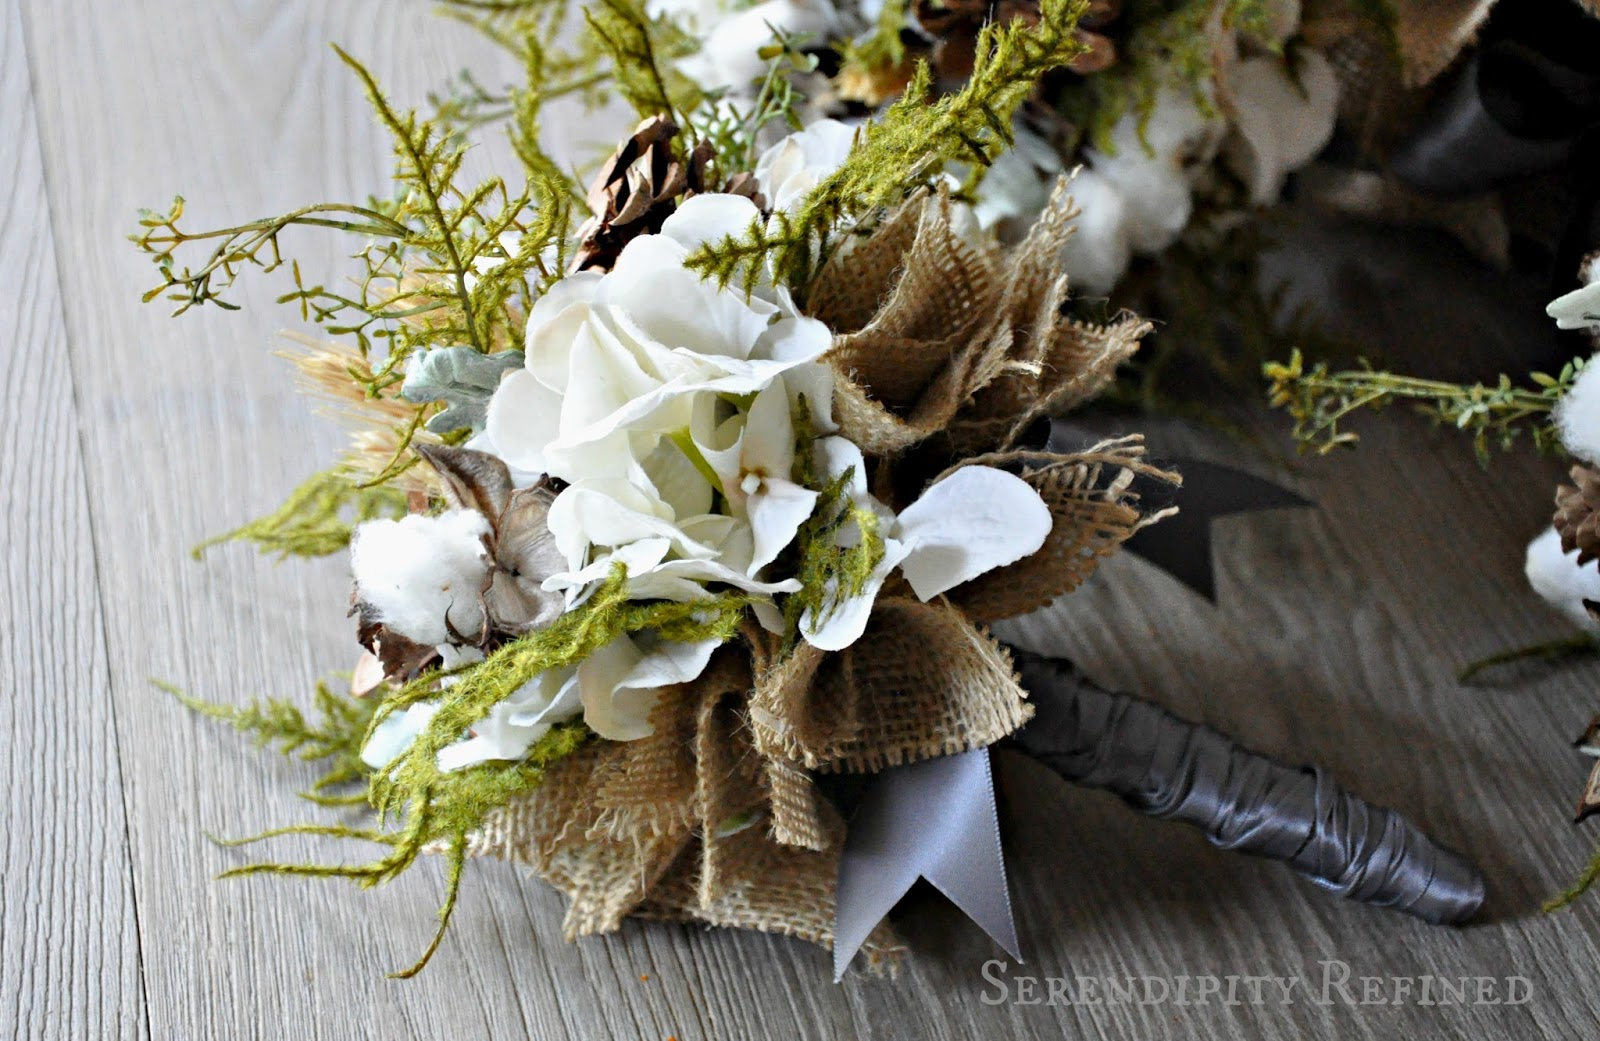 Serendipity Refined Blog Flowers for an Autumn Wedding Pinecones Roses Bu